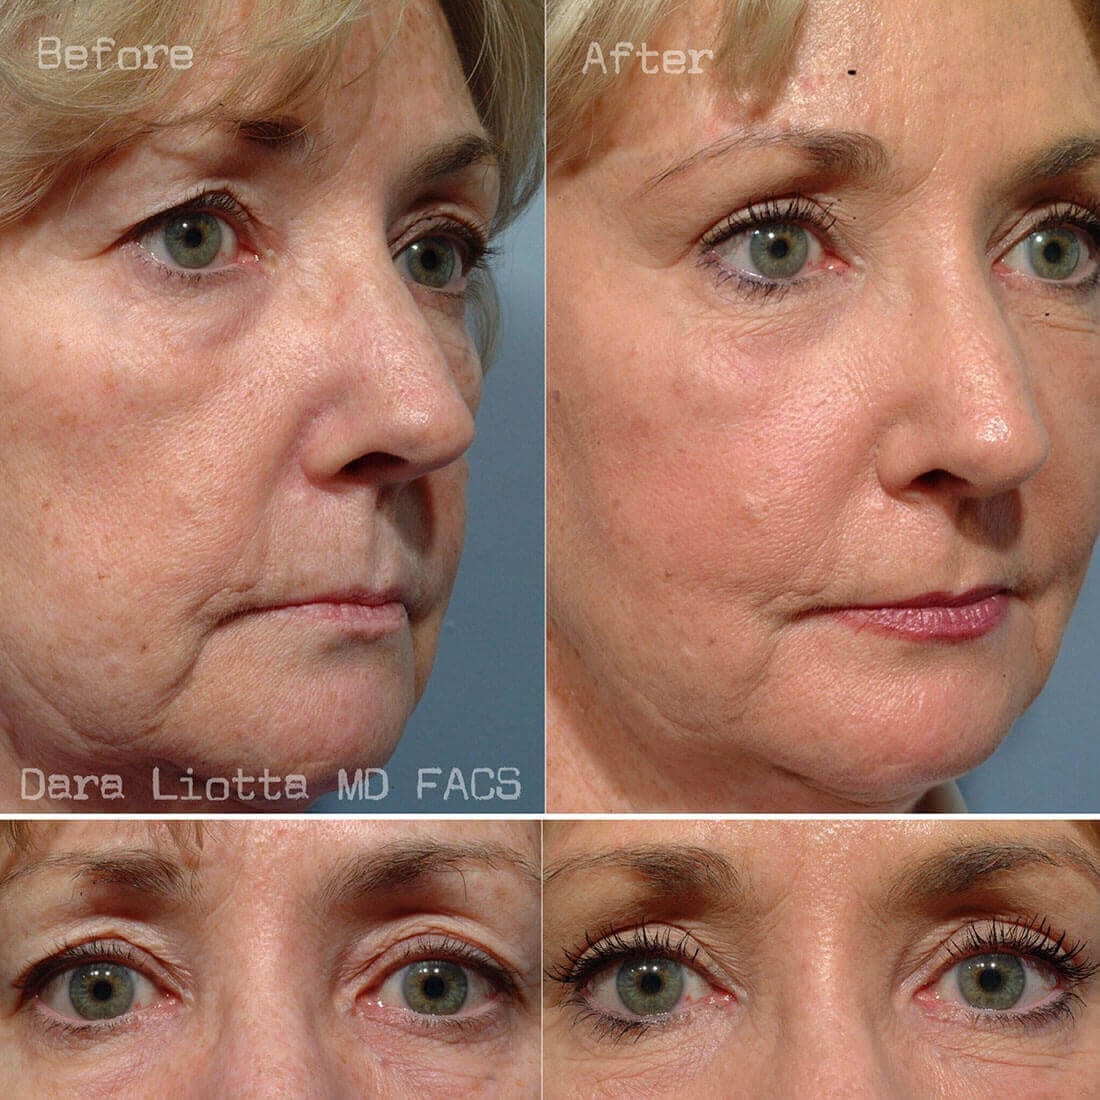 Before and After Eyelid Surgery 04